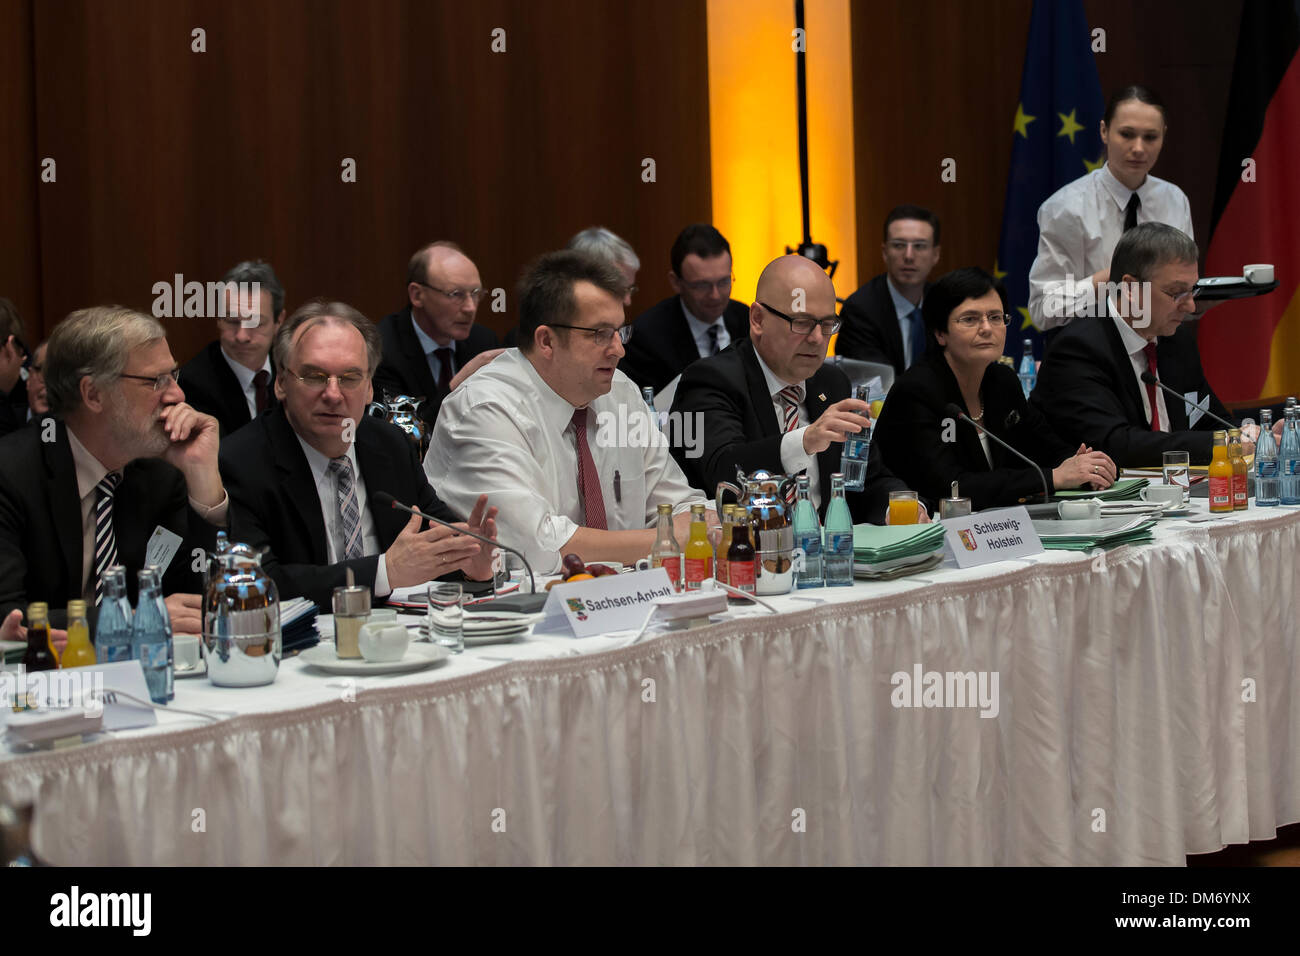 Berlin, Germany. December 12th, 2013. Meeting/Conference of the heads of government of the Germany Federal states Stock Photo